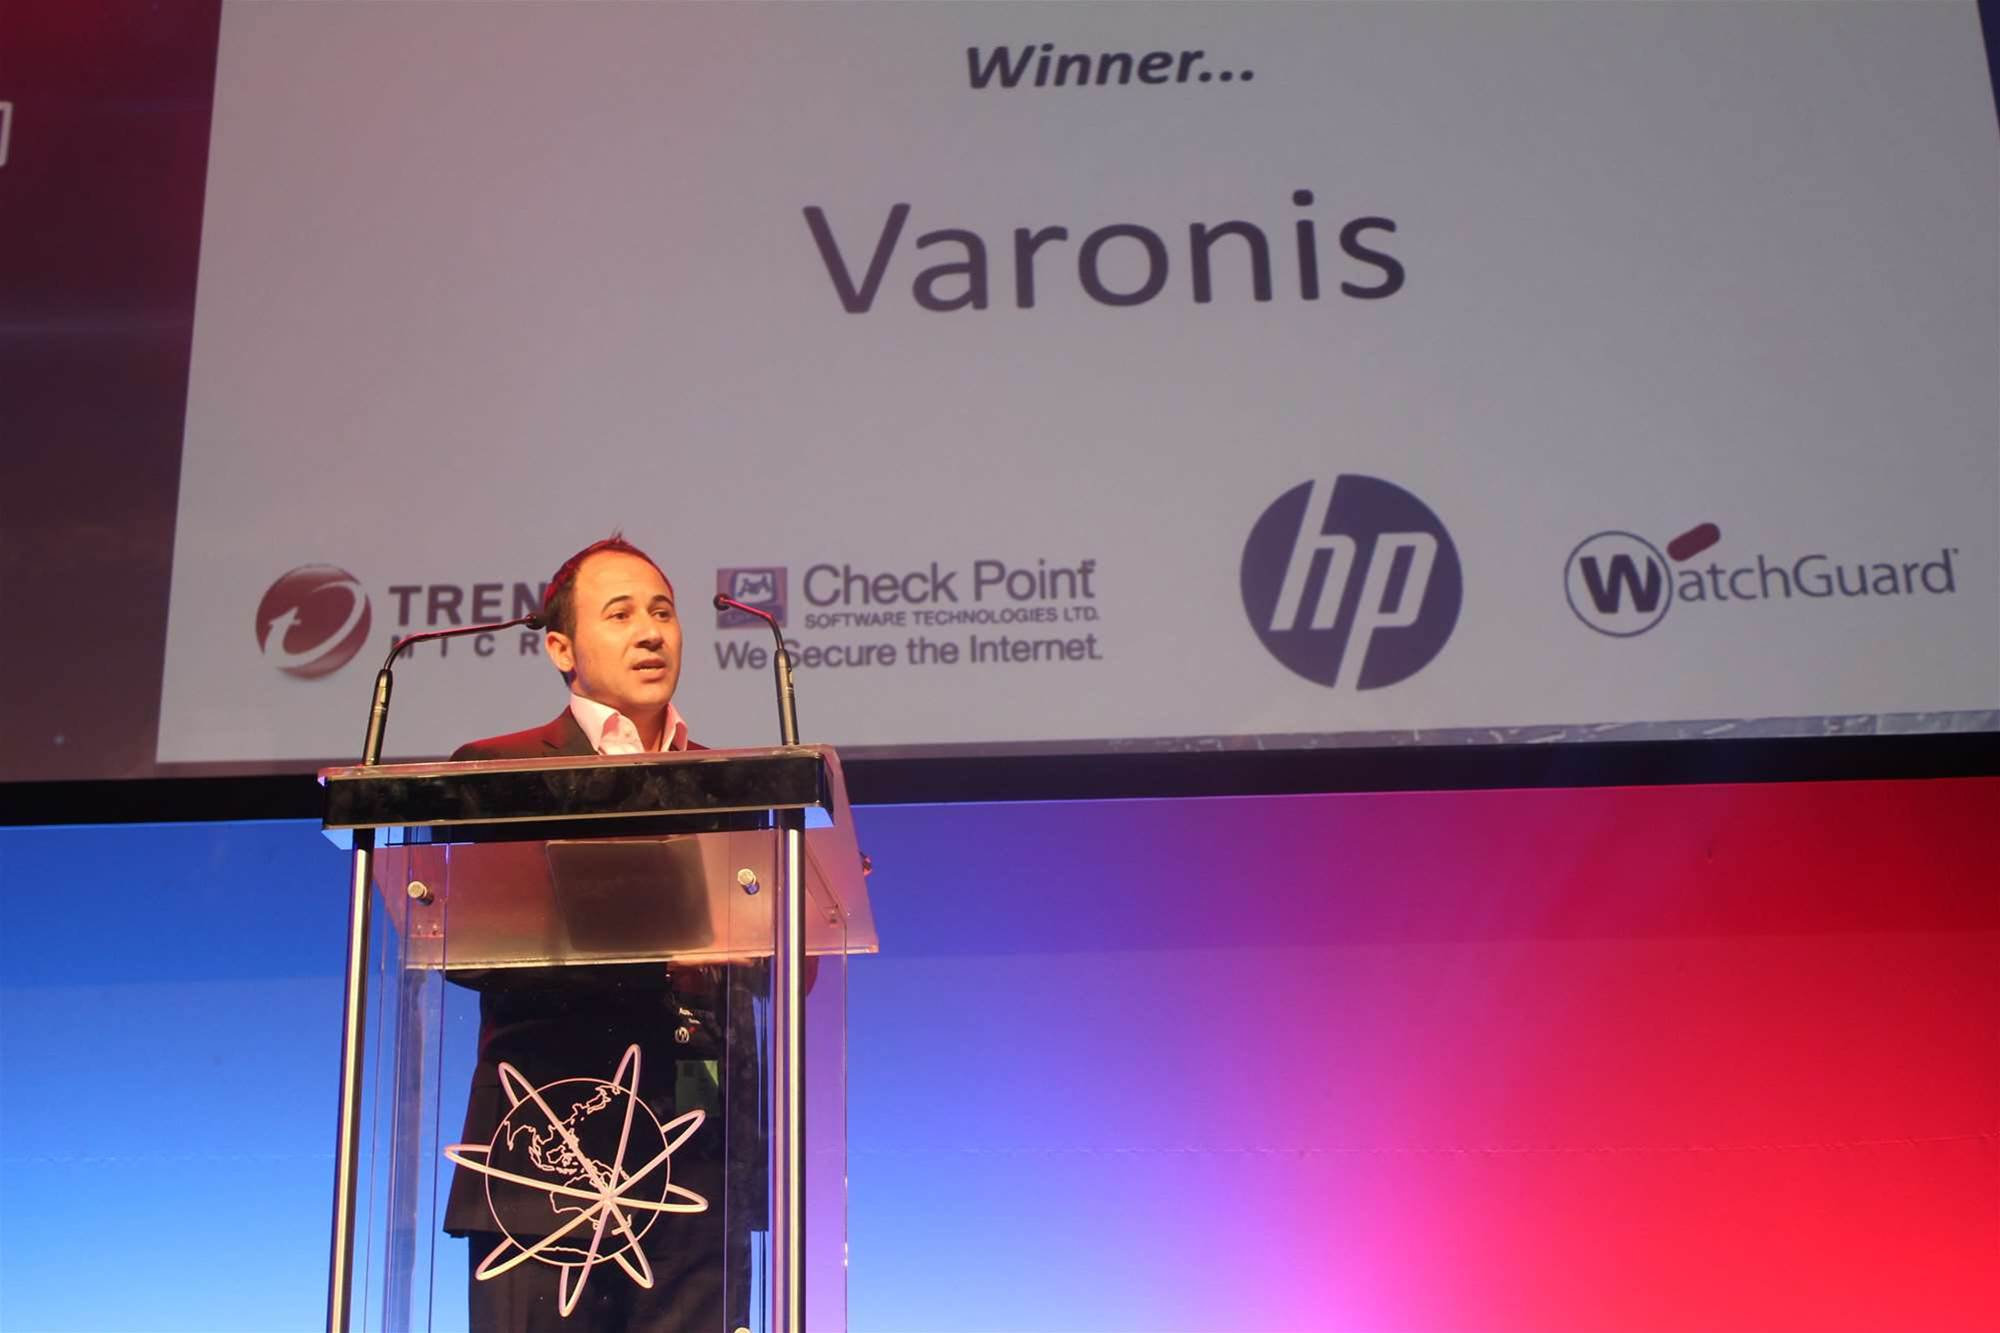 Varonis wins Product of the Year.